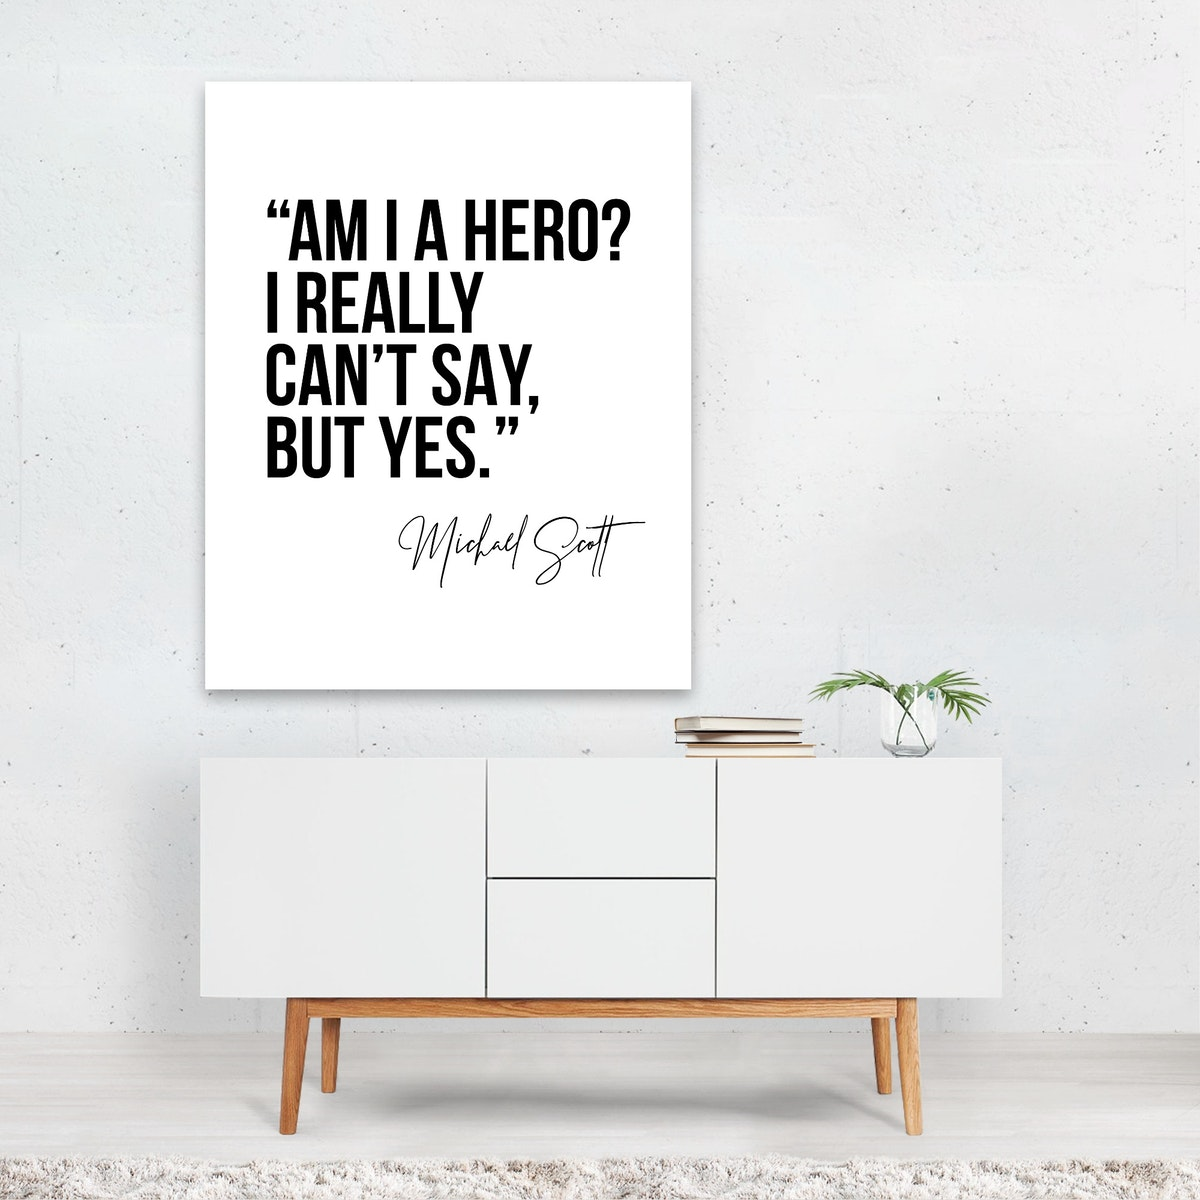 Am I A Hero? I Really Can't Say, but Yes. -Michael Scott Quote